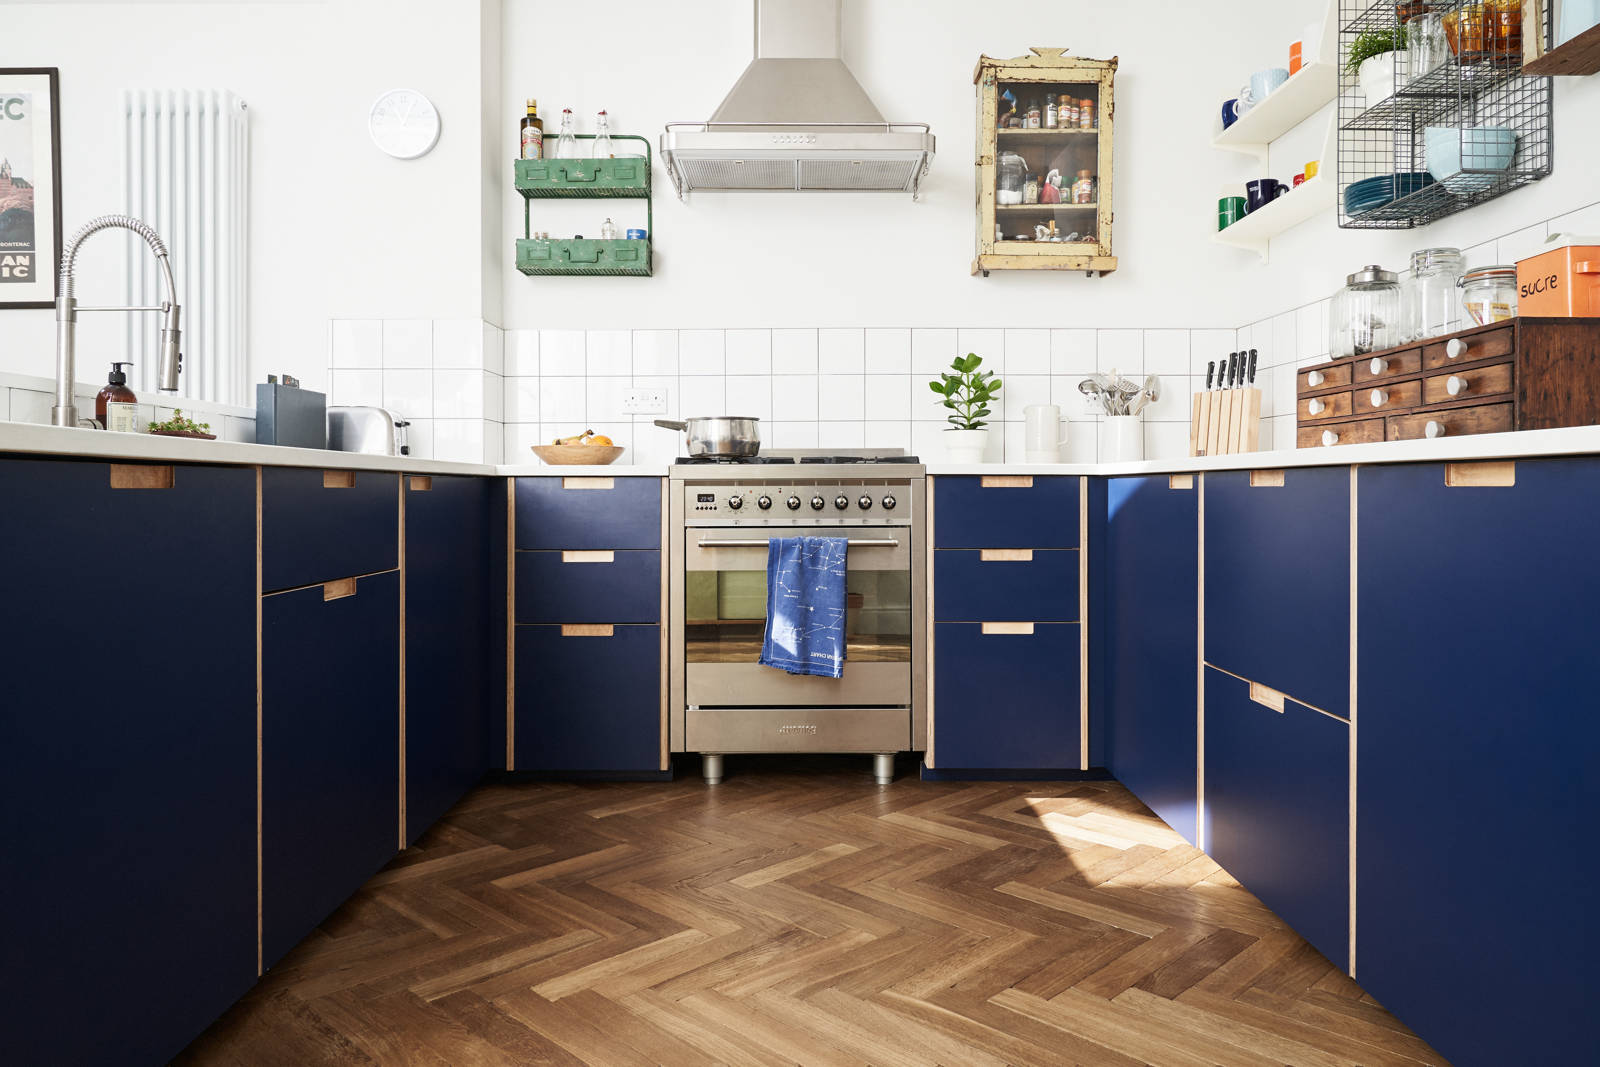 Blue Kitchen Cabinets Ikea 7 Door Brands for Dressing Up Ikea Kitchen Cabinets | Residential